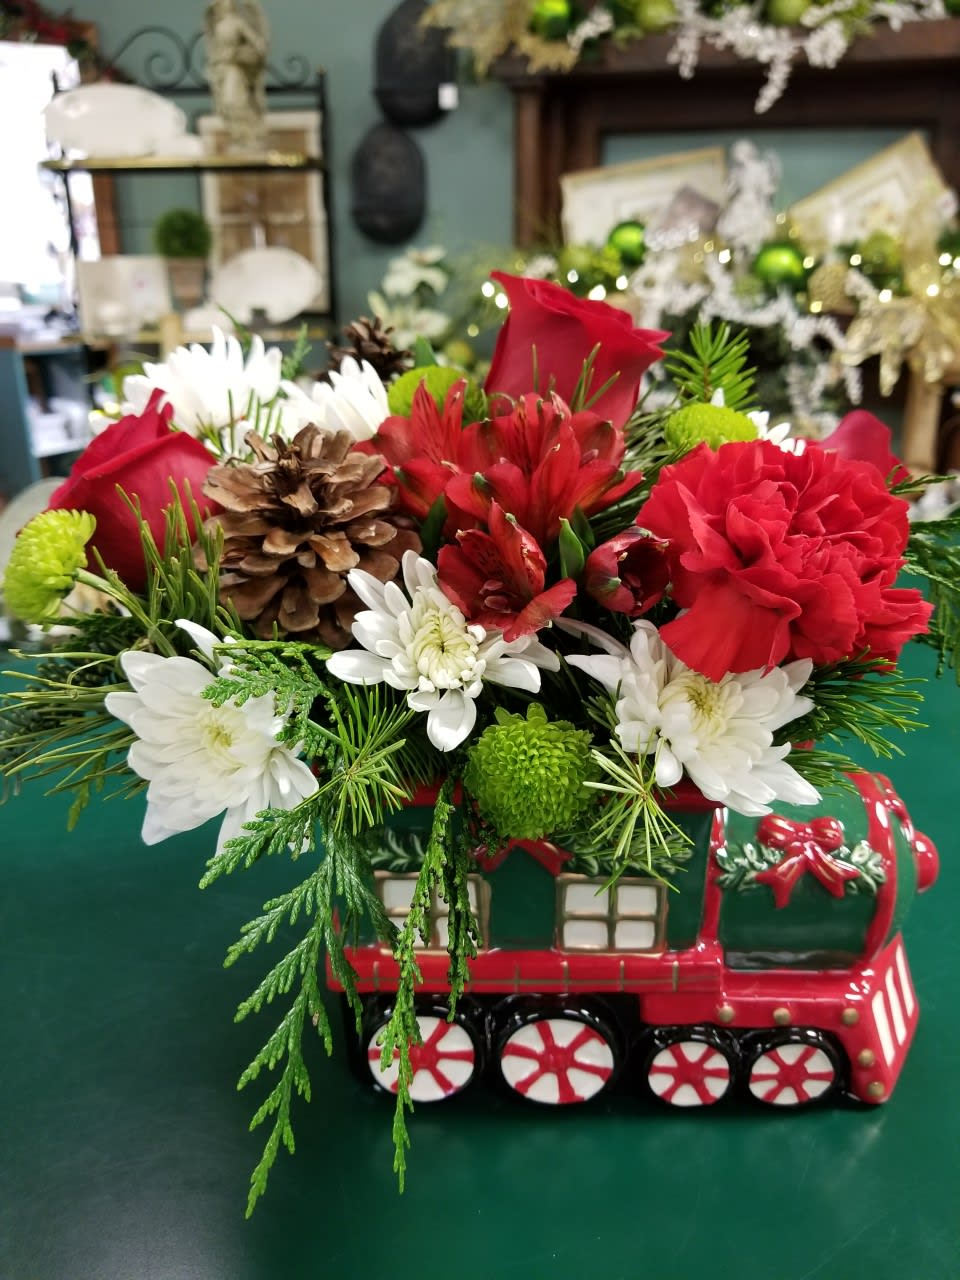 This Christmas.Christmas Train In Saint Louis Mo Russell Florist